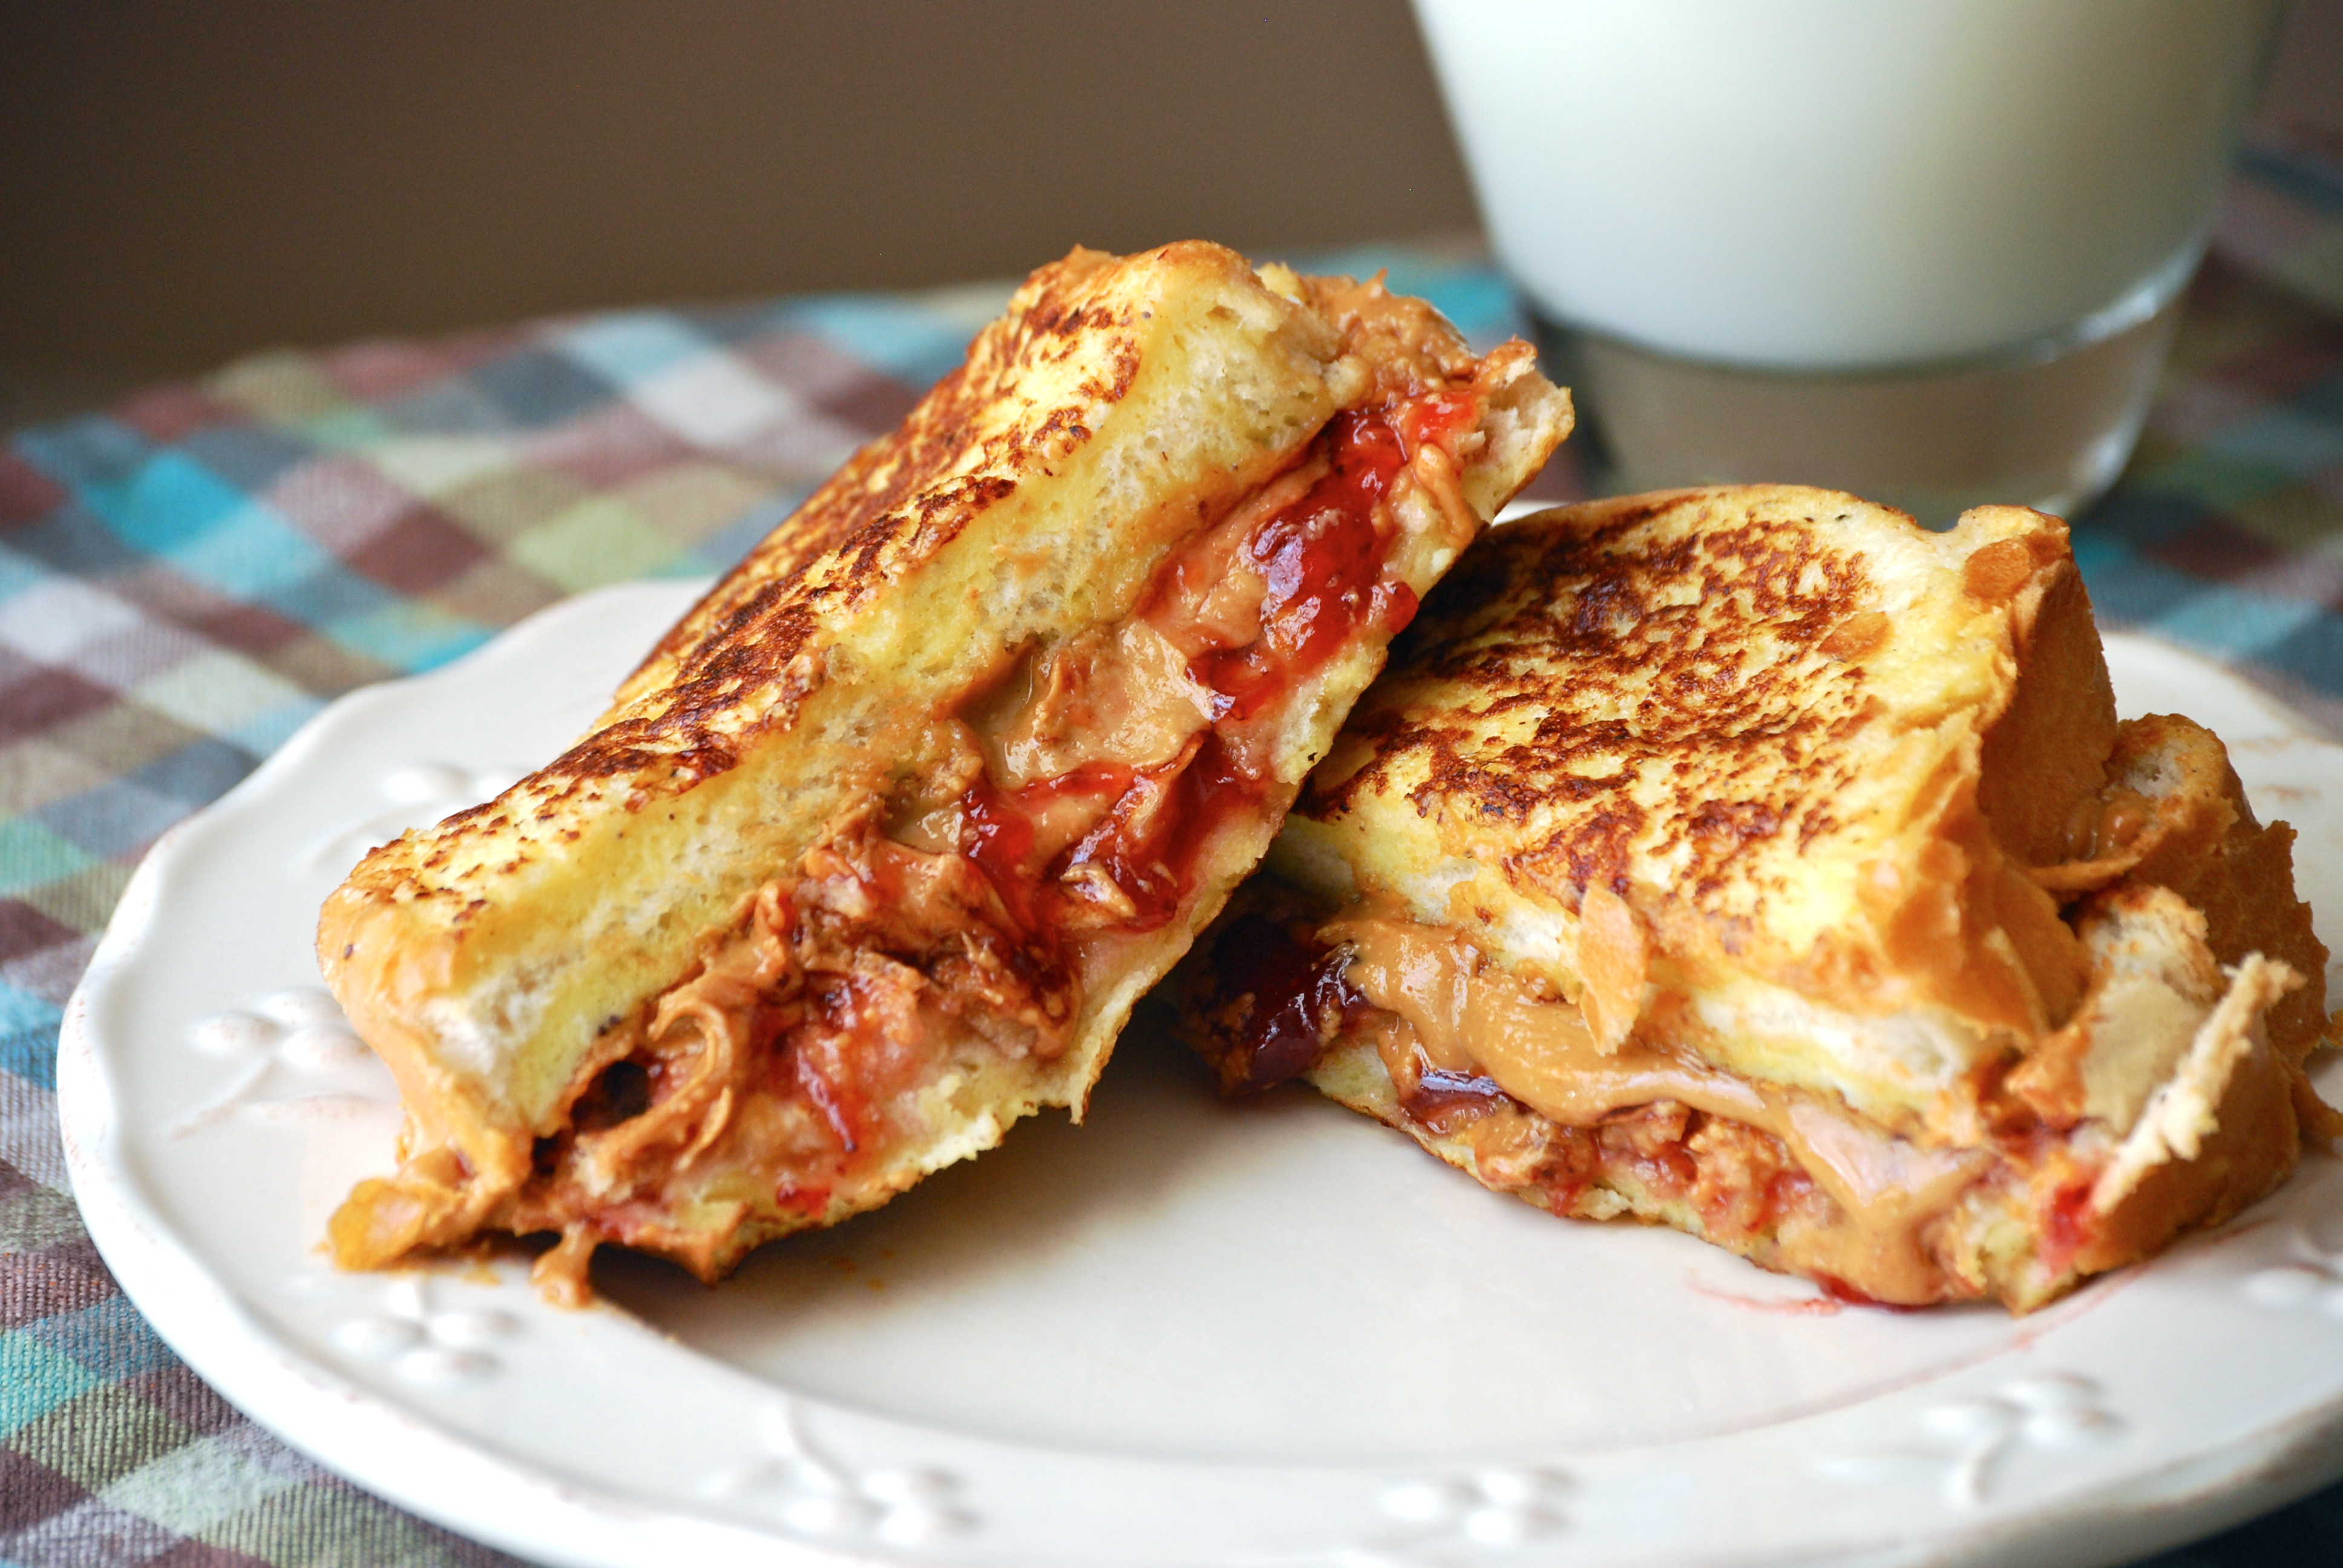 French Toast Sandwich  Peanut Butter & Jelly French Toast Sandwich Macaroni and